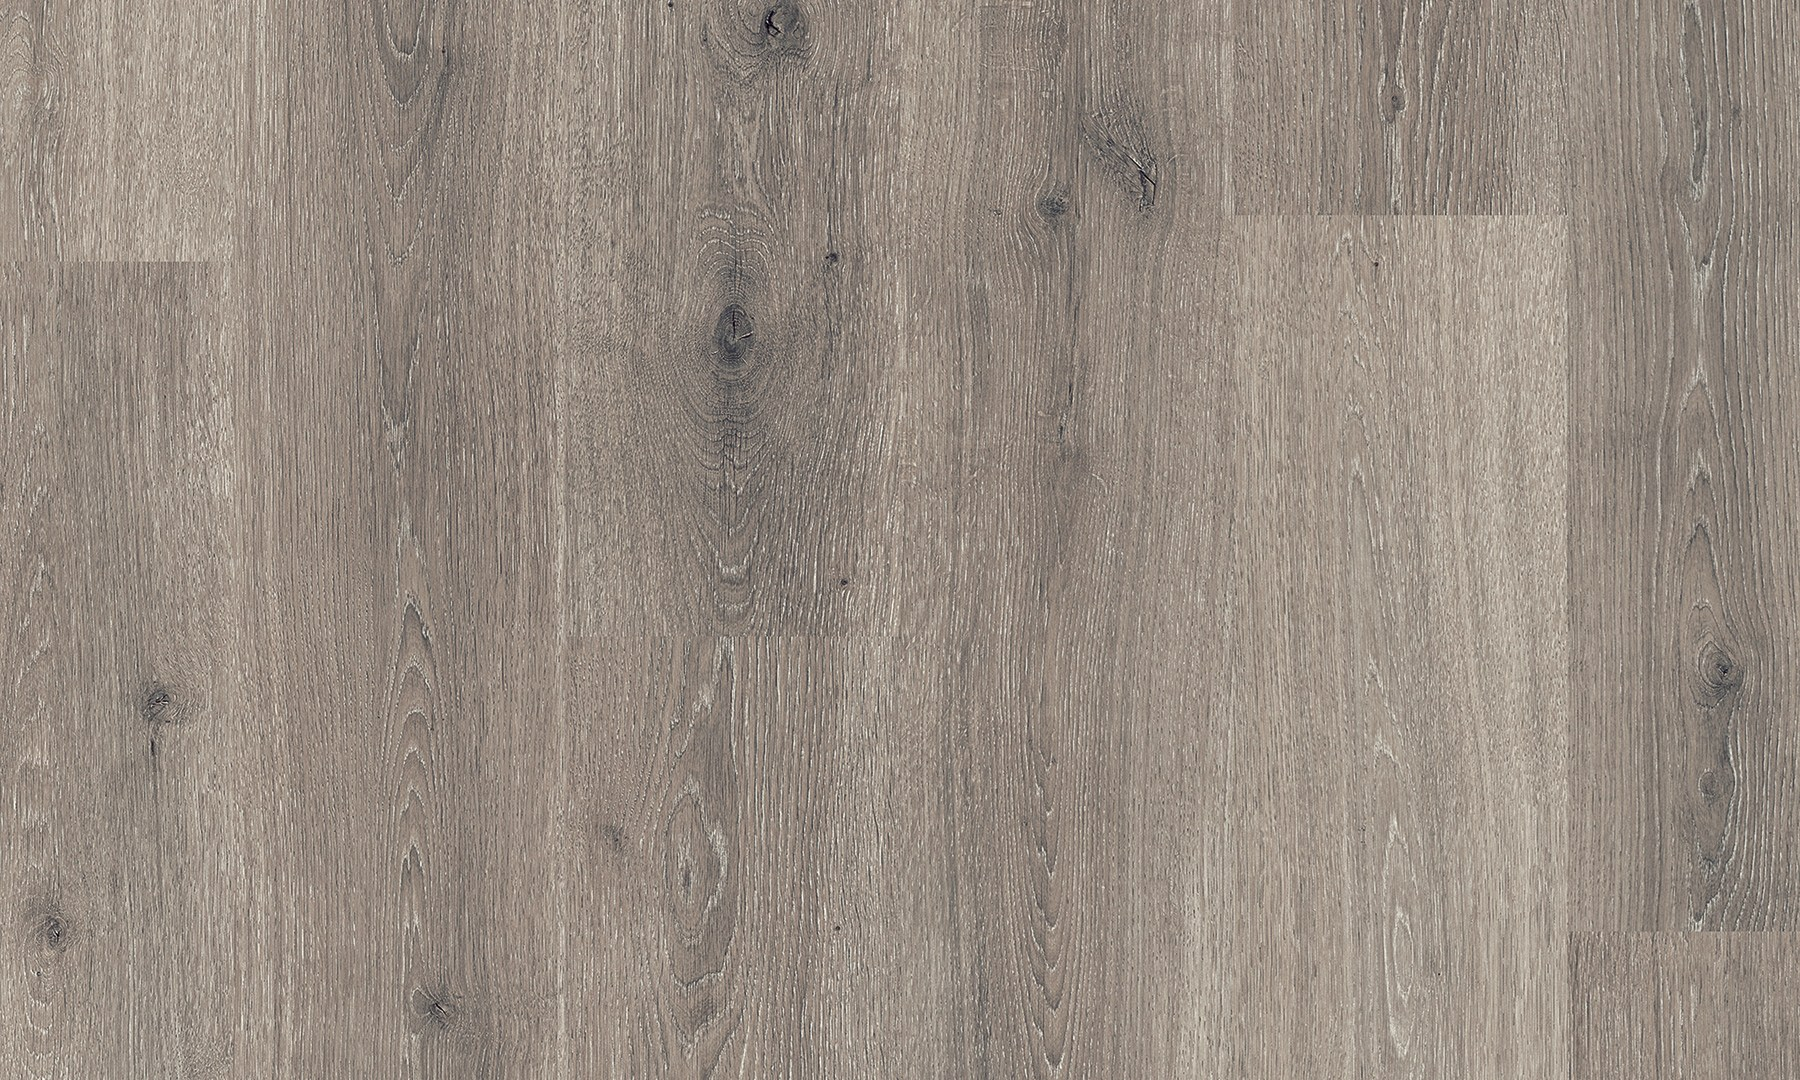 Top 28 pergo flooring grey grey pergo flooring 25 for Pergo laminate flooring